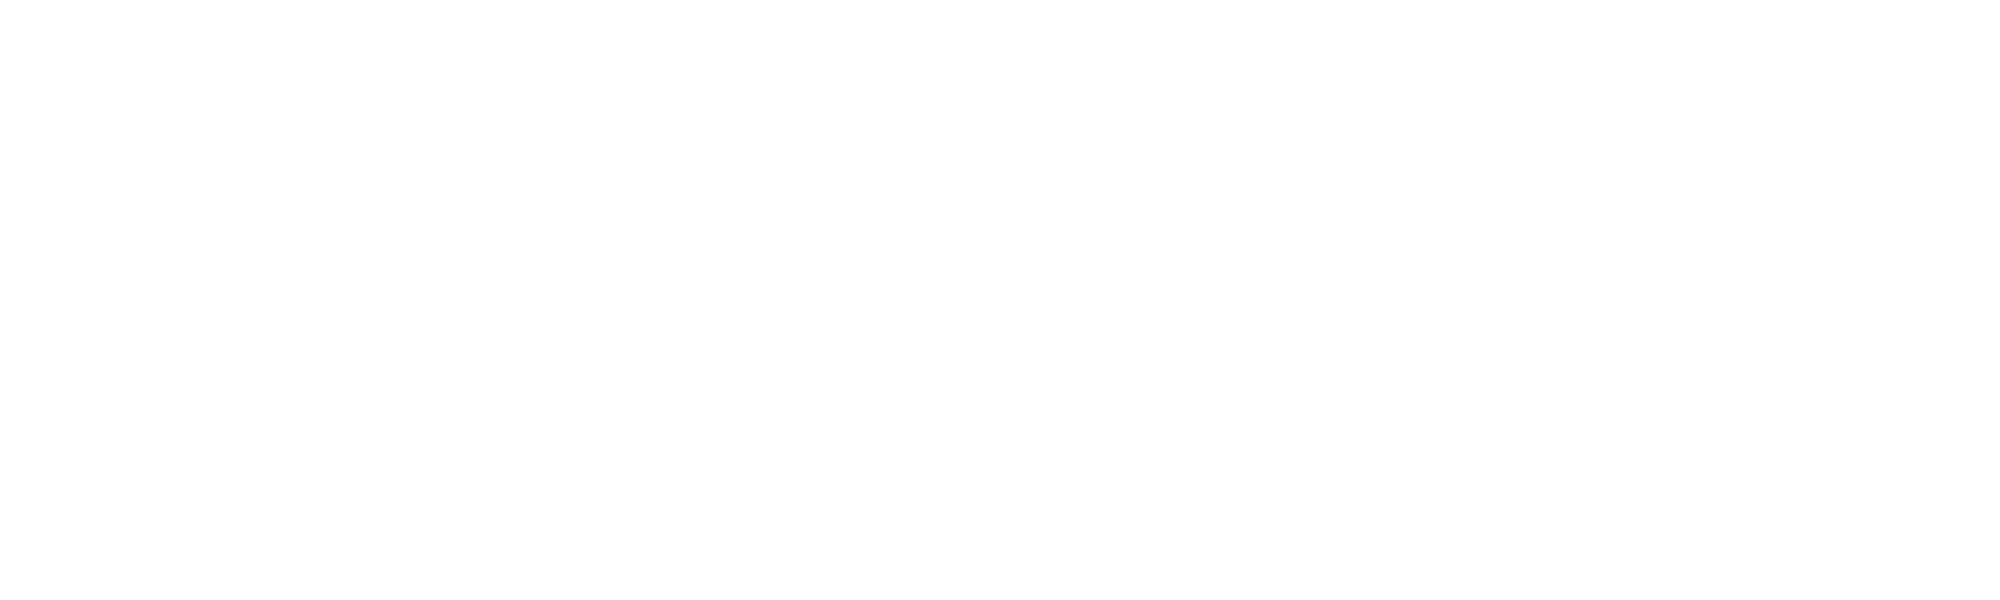 Carter's Customs, LLC